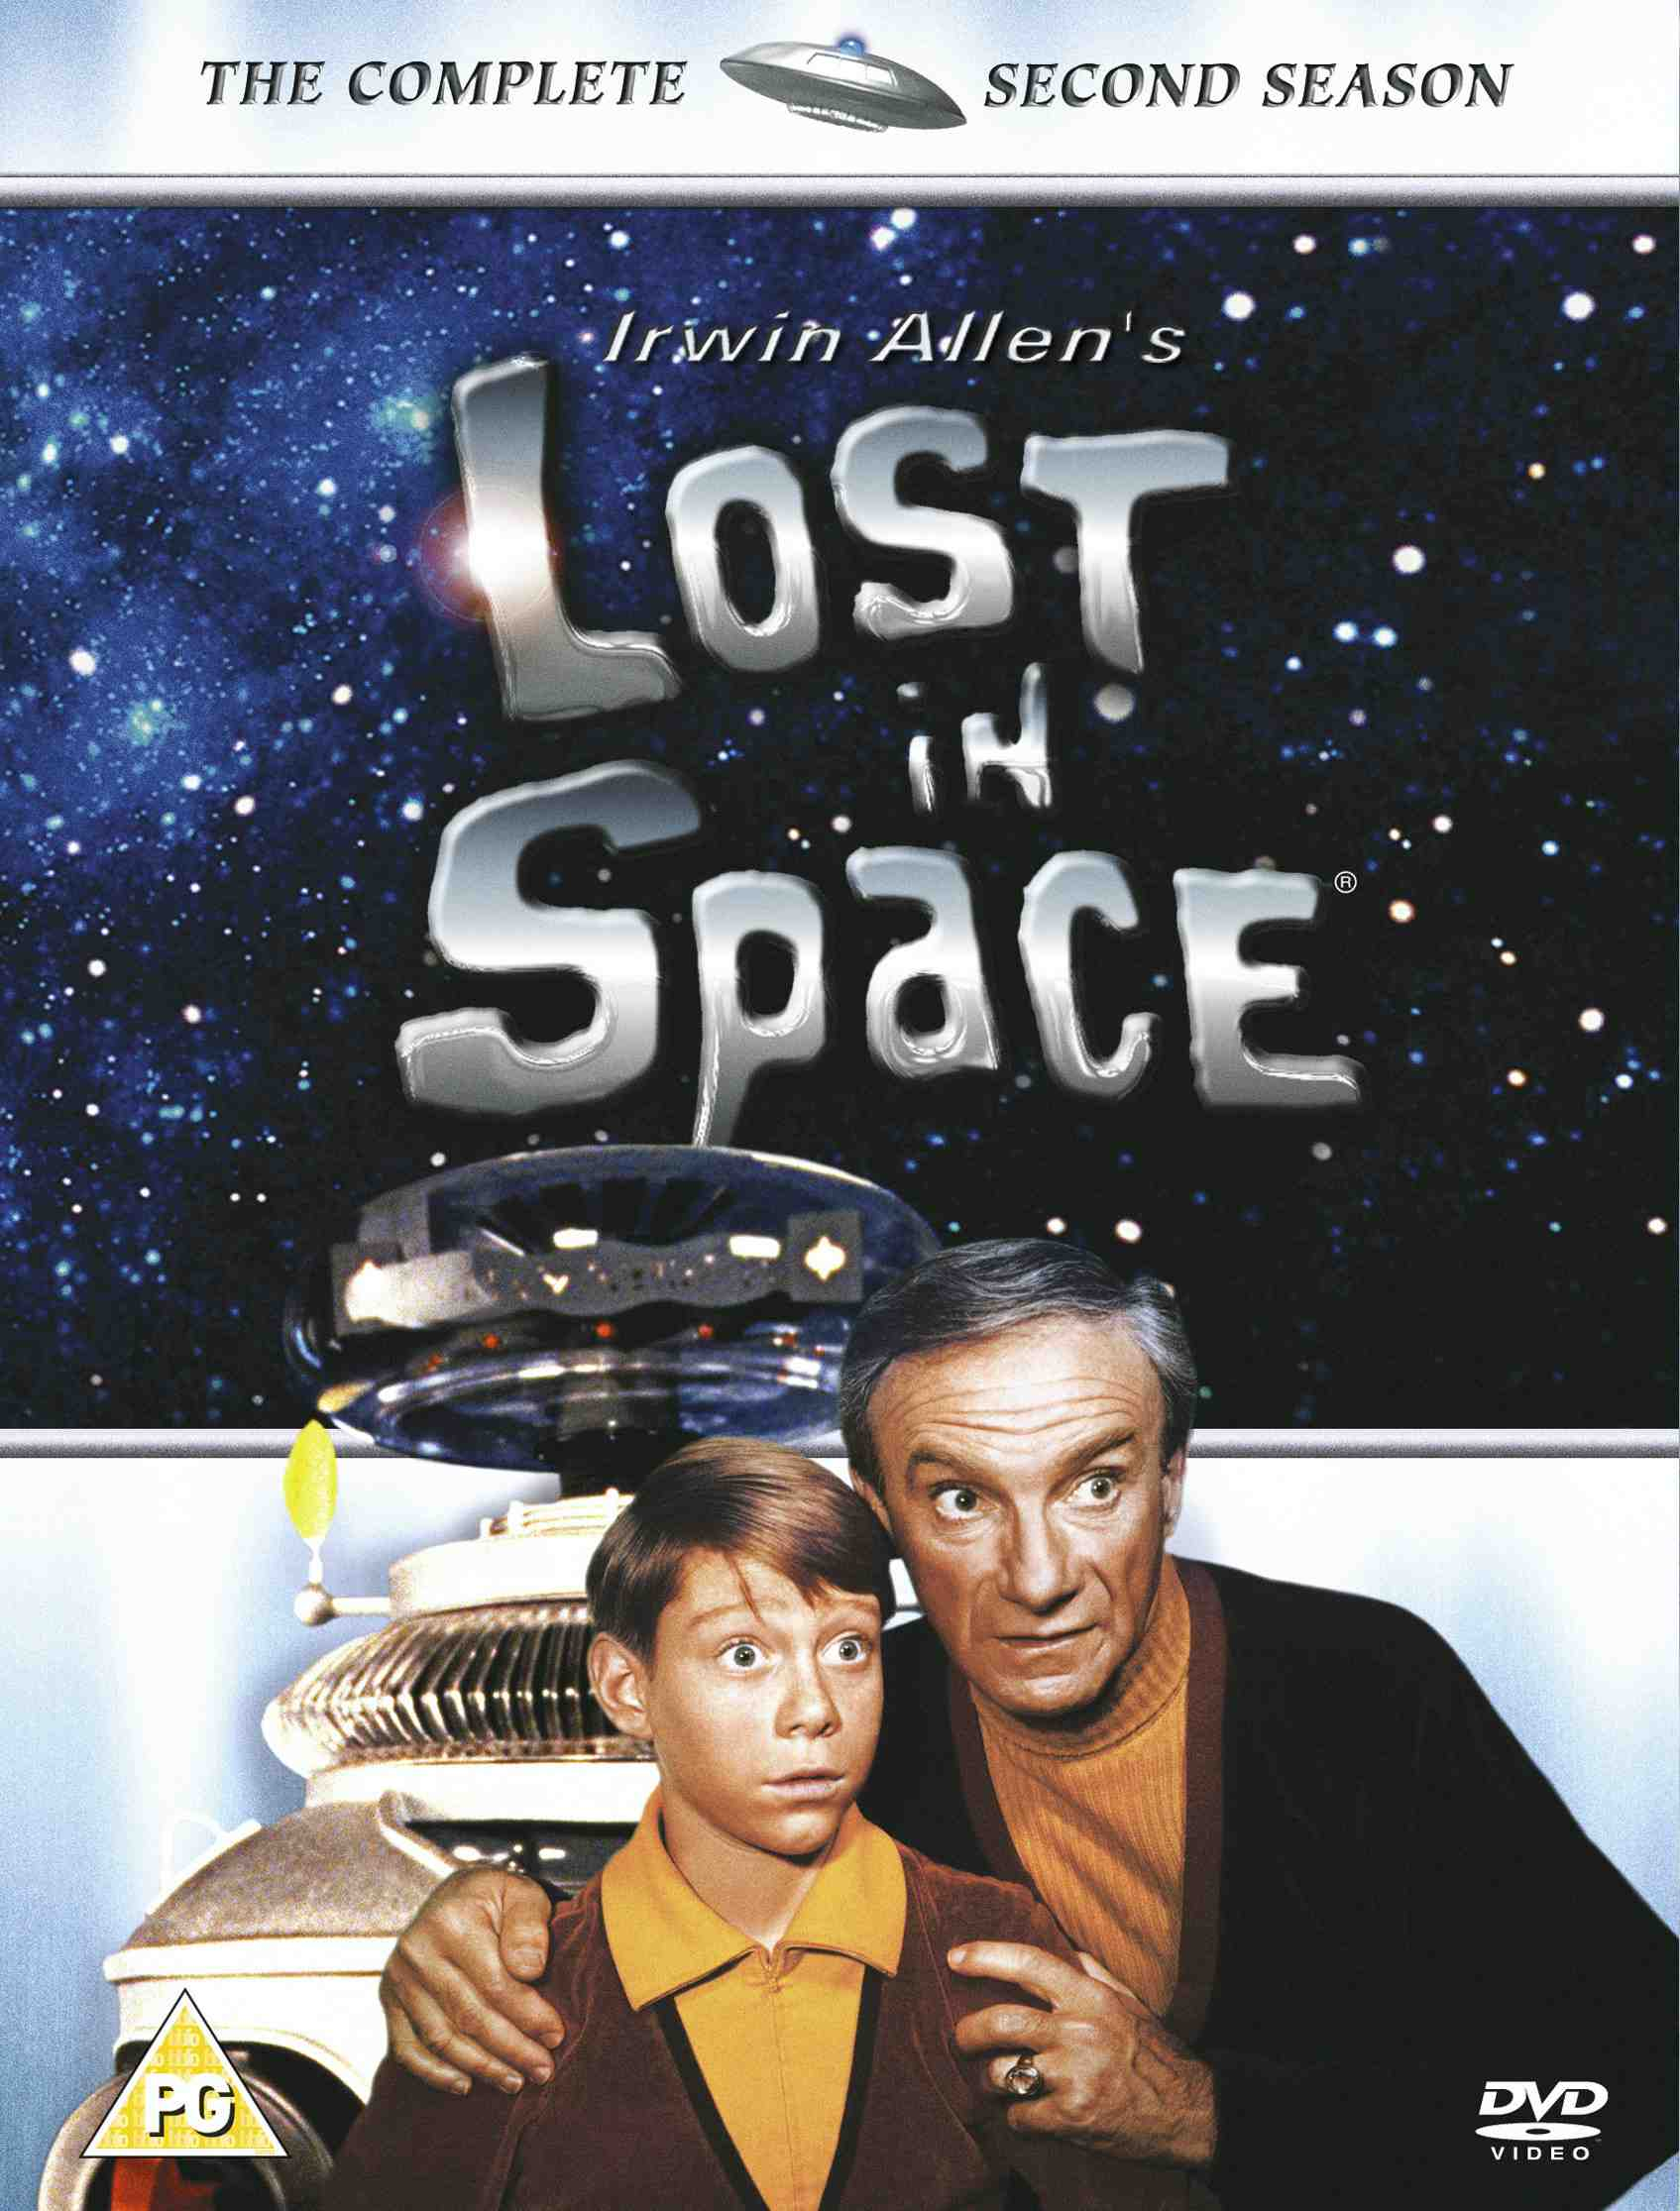 Lost in Space (1965) | Movie and TV Wiki | FANDOM powered by